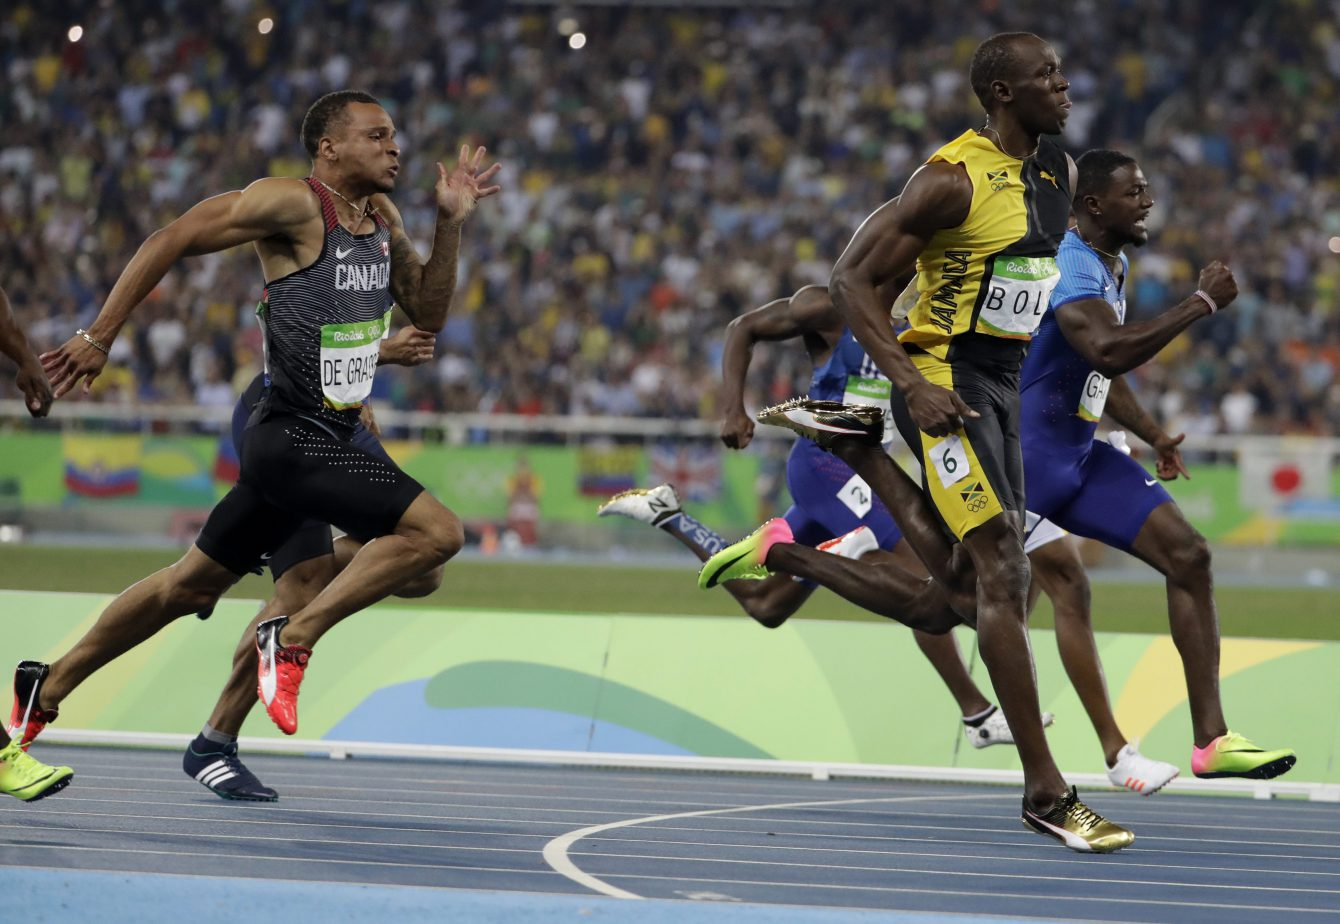 Jamaica's Usain Bolt sprints ahead of Canada's Andre de Grasse, left, and United States' Justin Gatlin in the men's 100-meter final during the athletics competitions of the 2016 Summer Olympics at the Olympic stadium in Rio de Janeiro, Brazil, Sunday, Aug. 14, 2016. (AP Photo/David Goldman)